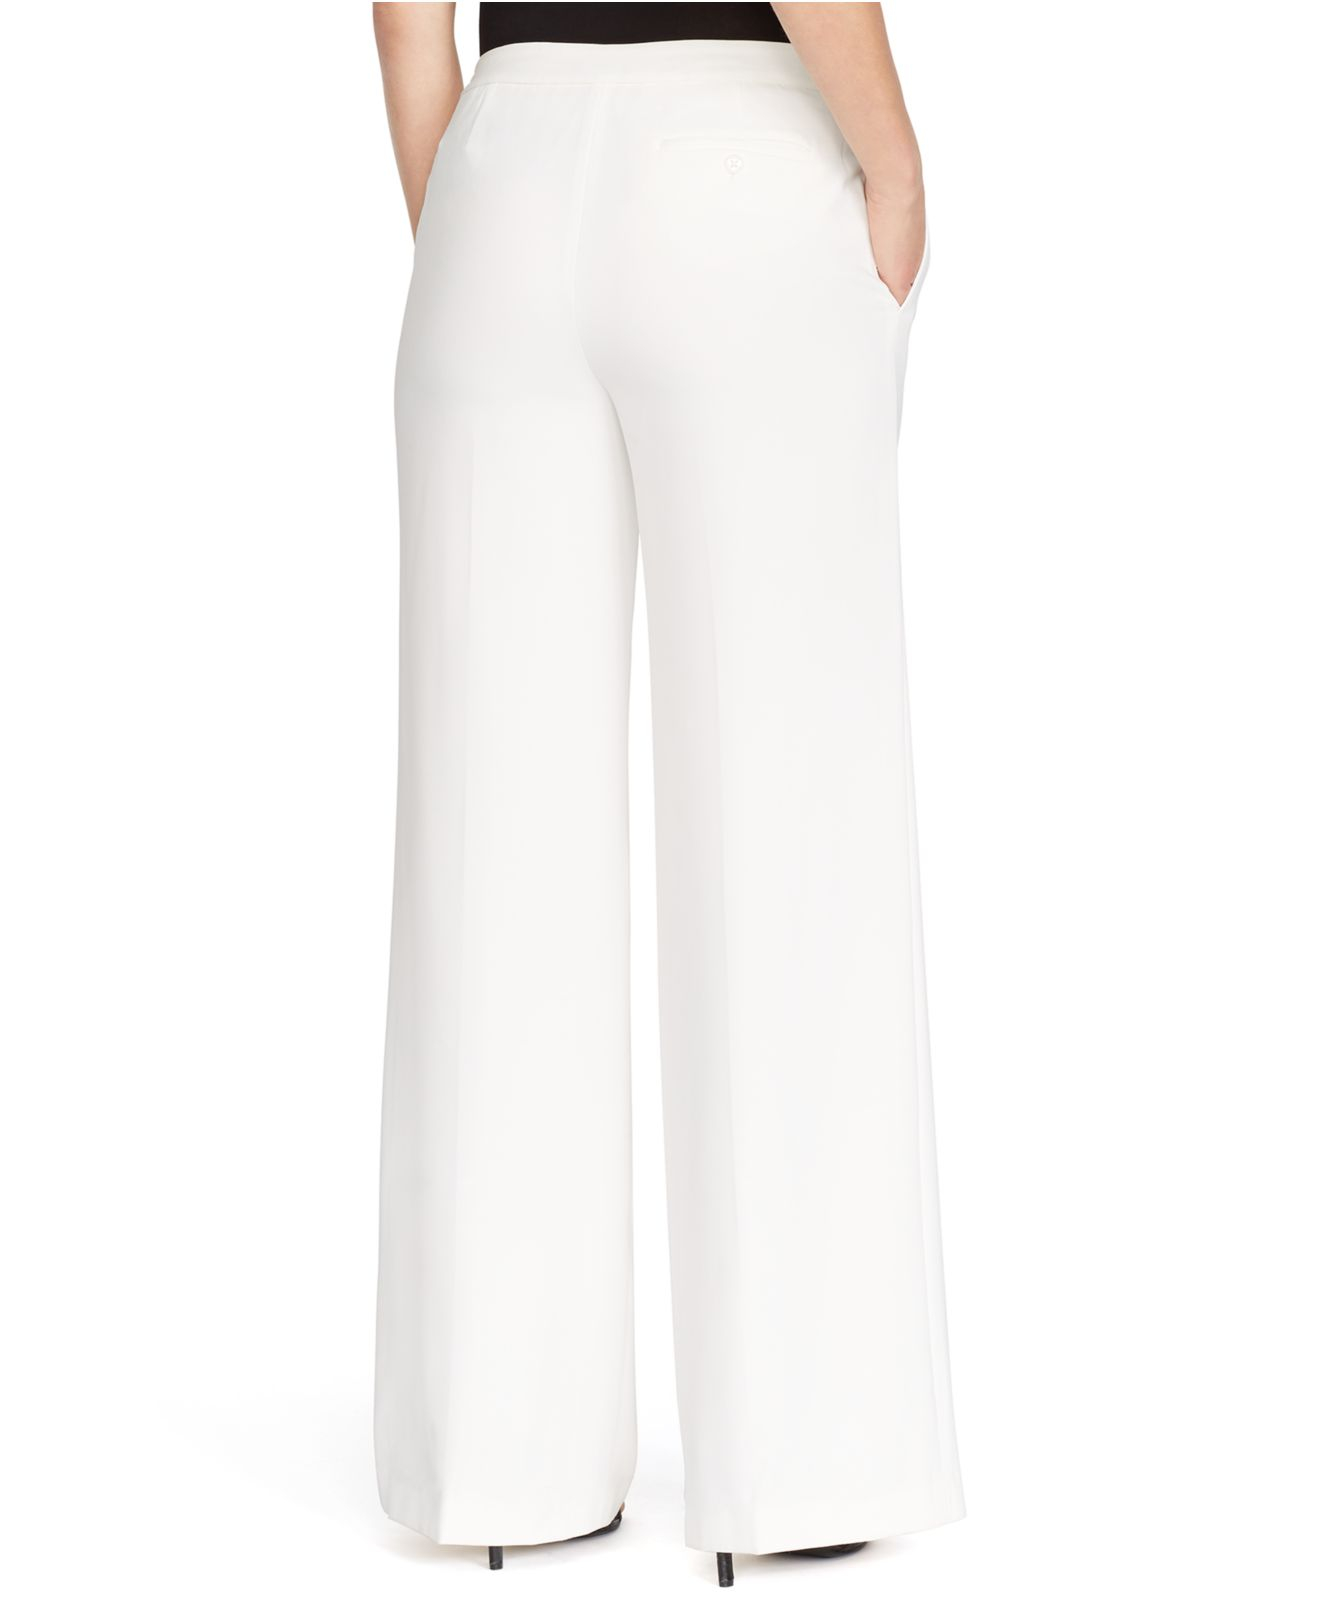 Shop must-have wide-leg pants for the season at angrydog.ga